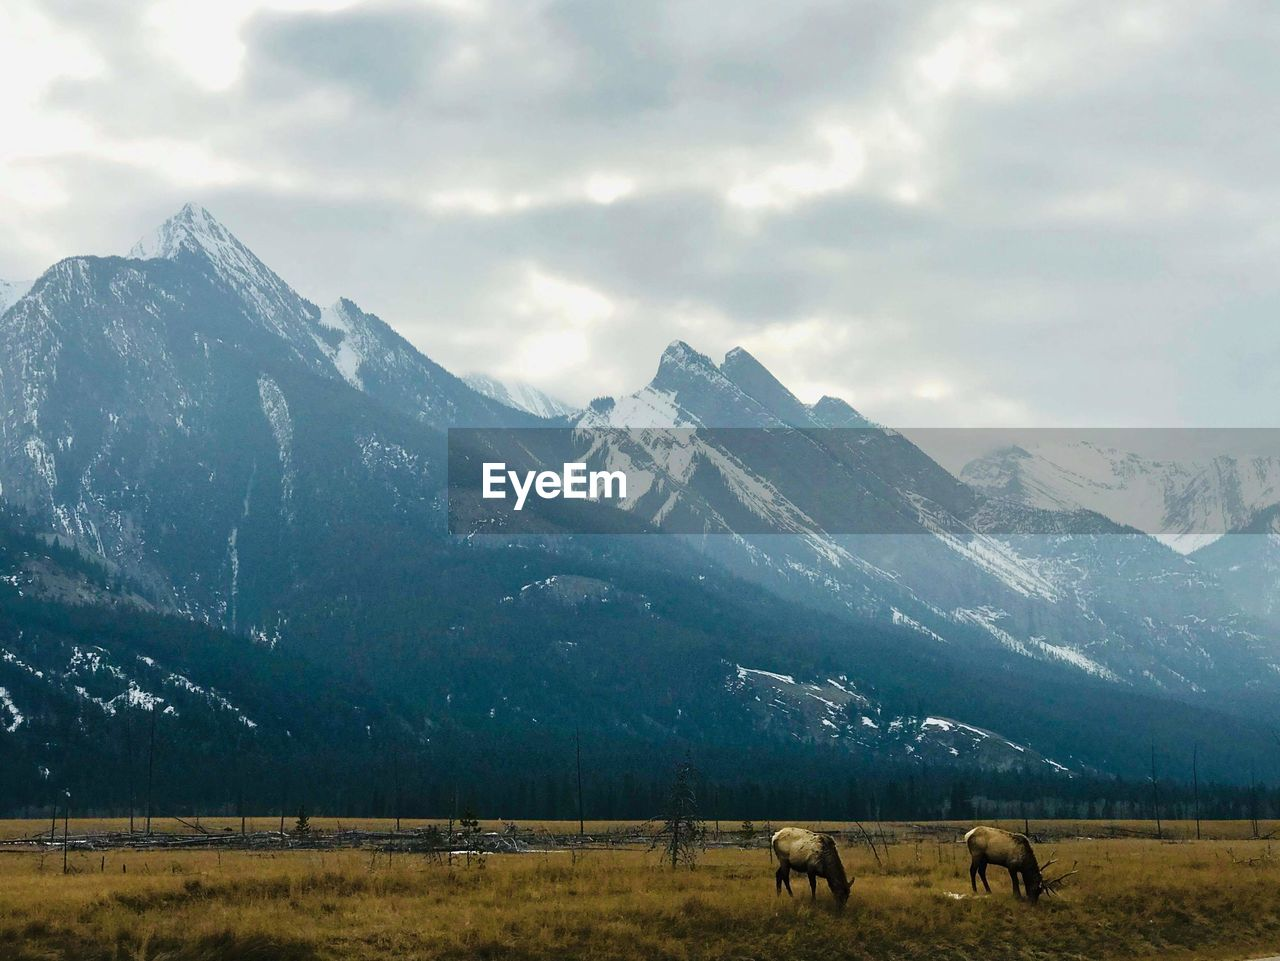 View of horses on field by mountain against sky